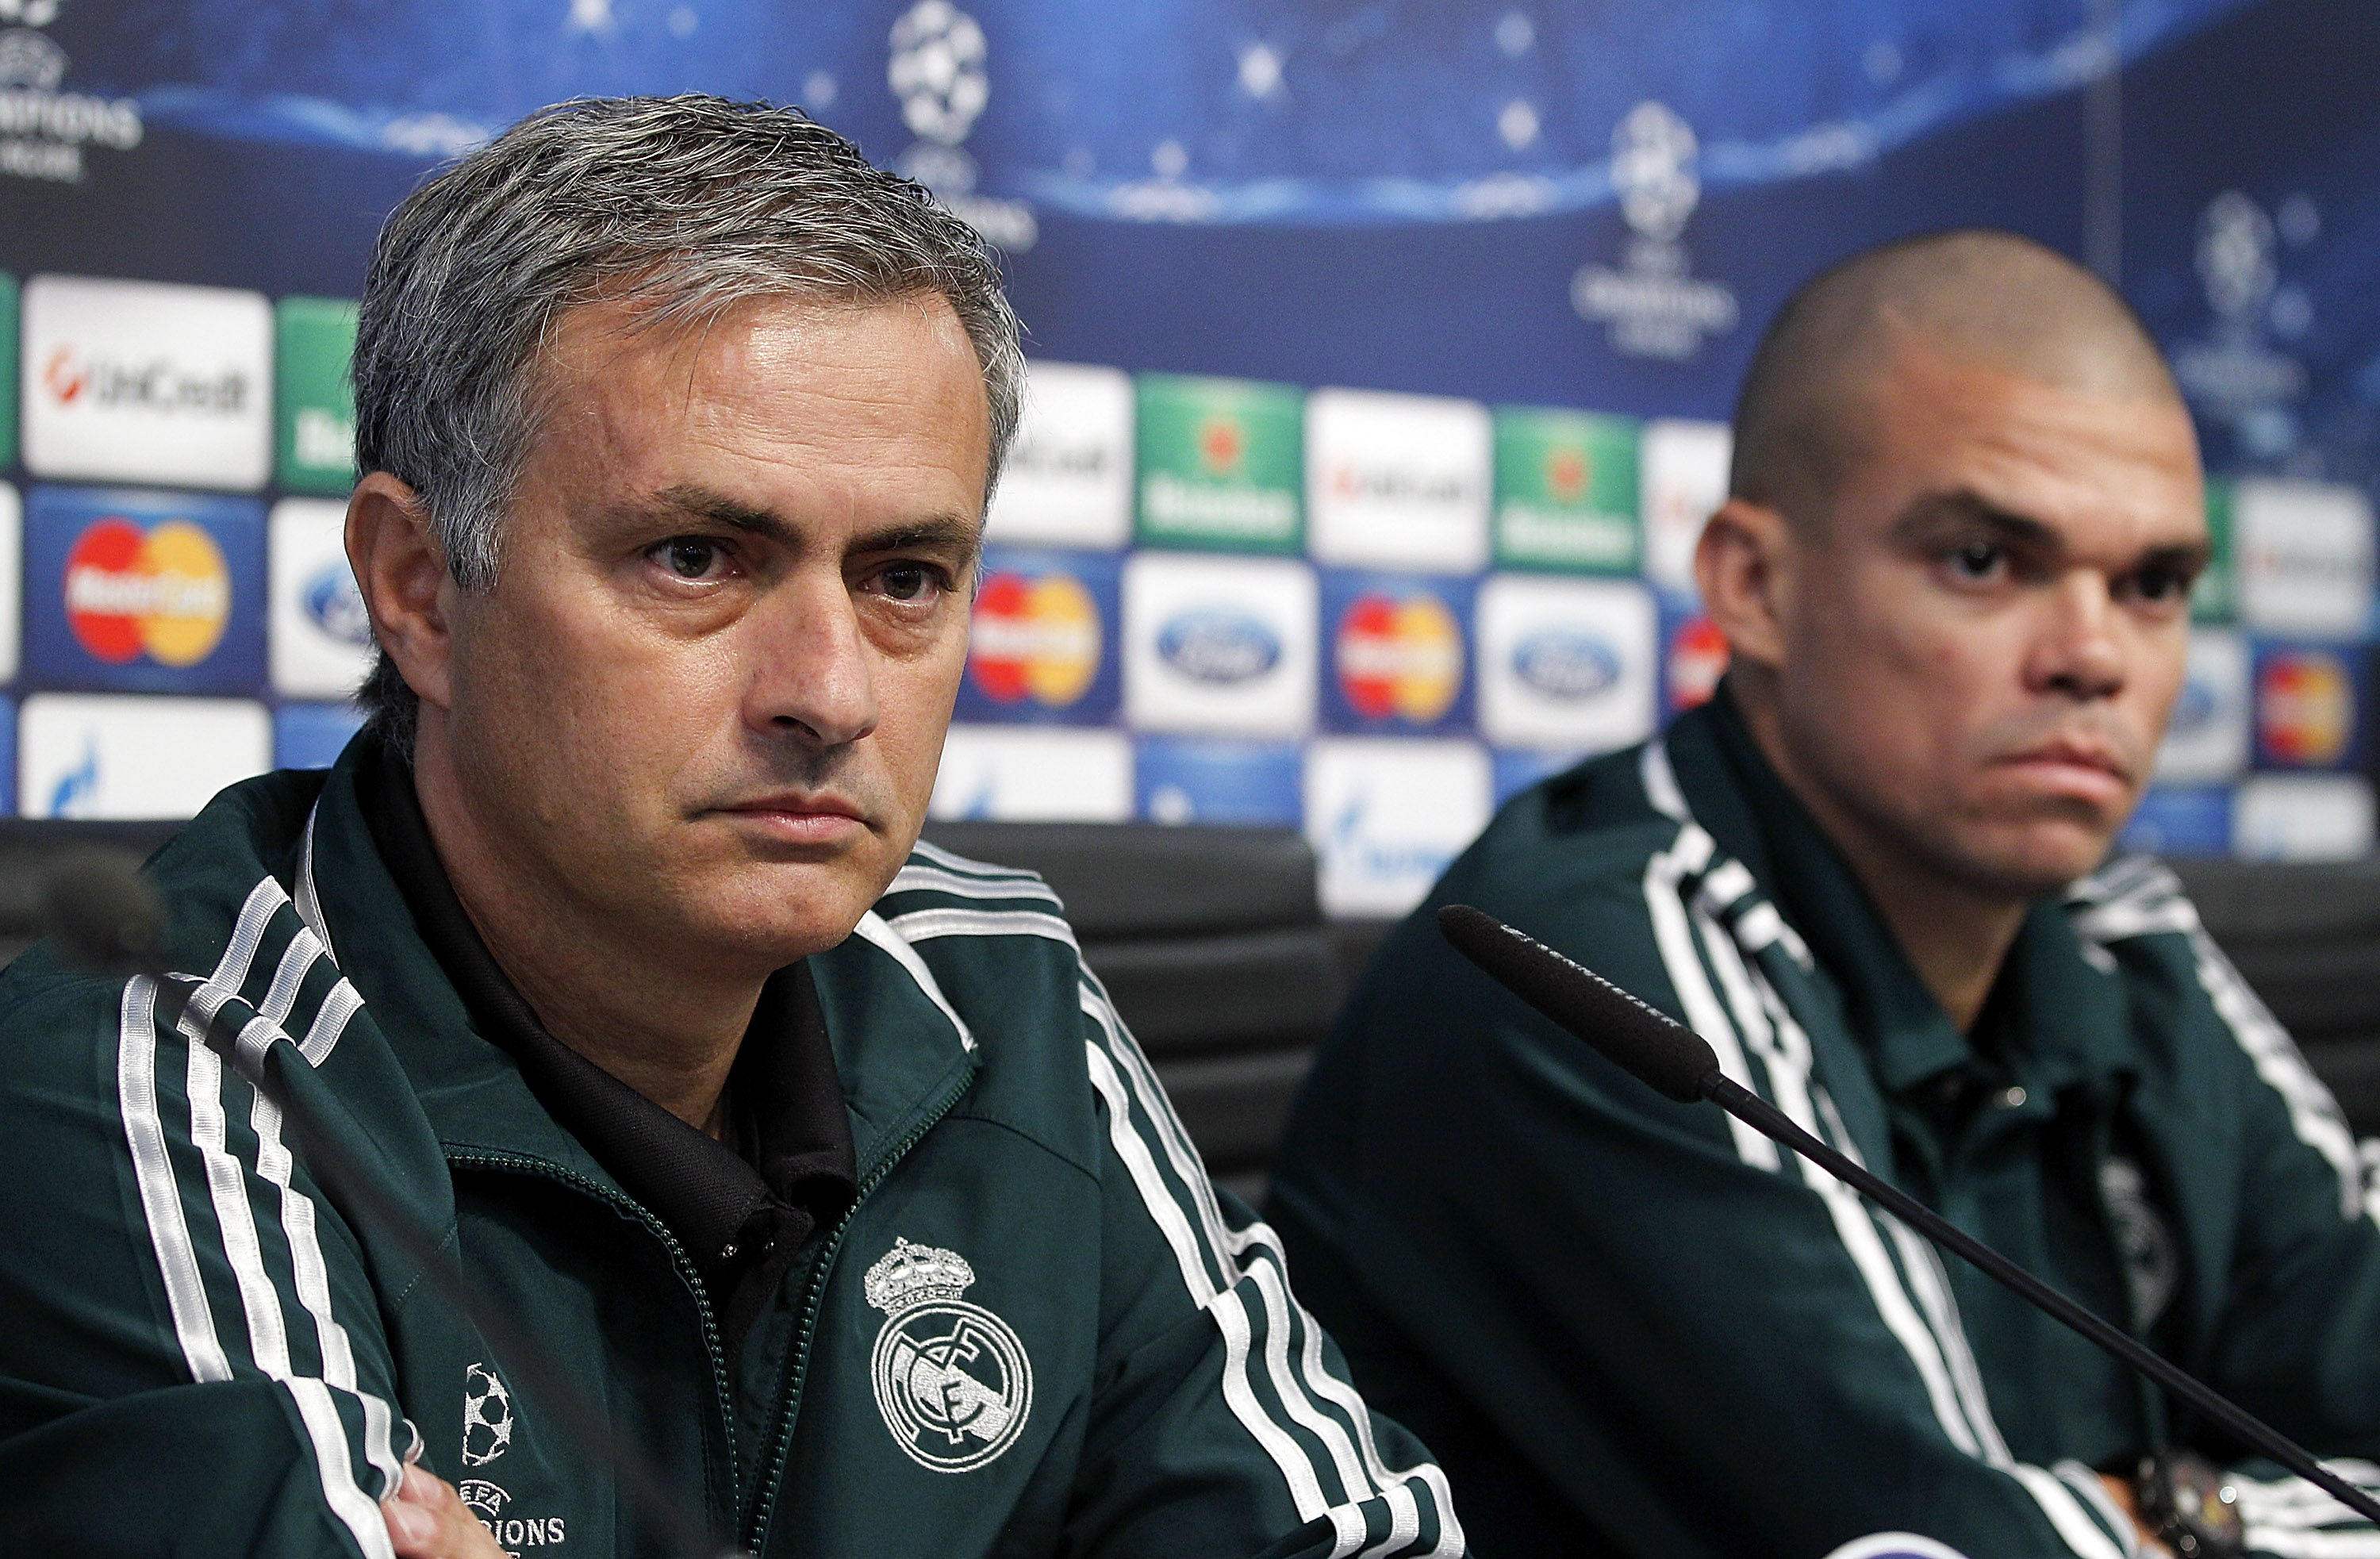 Real Madrid defender Pepe angry Jose Mourinho turned people against the club during his reign